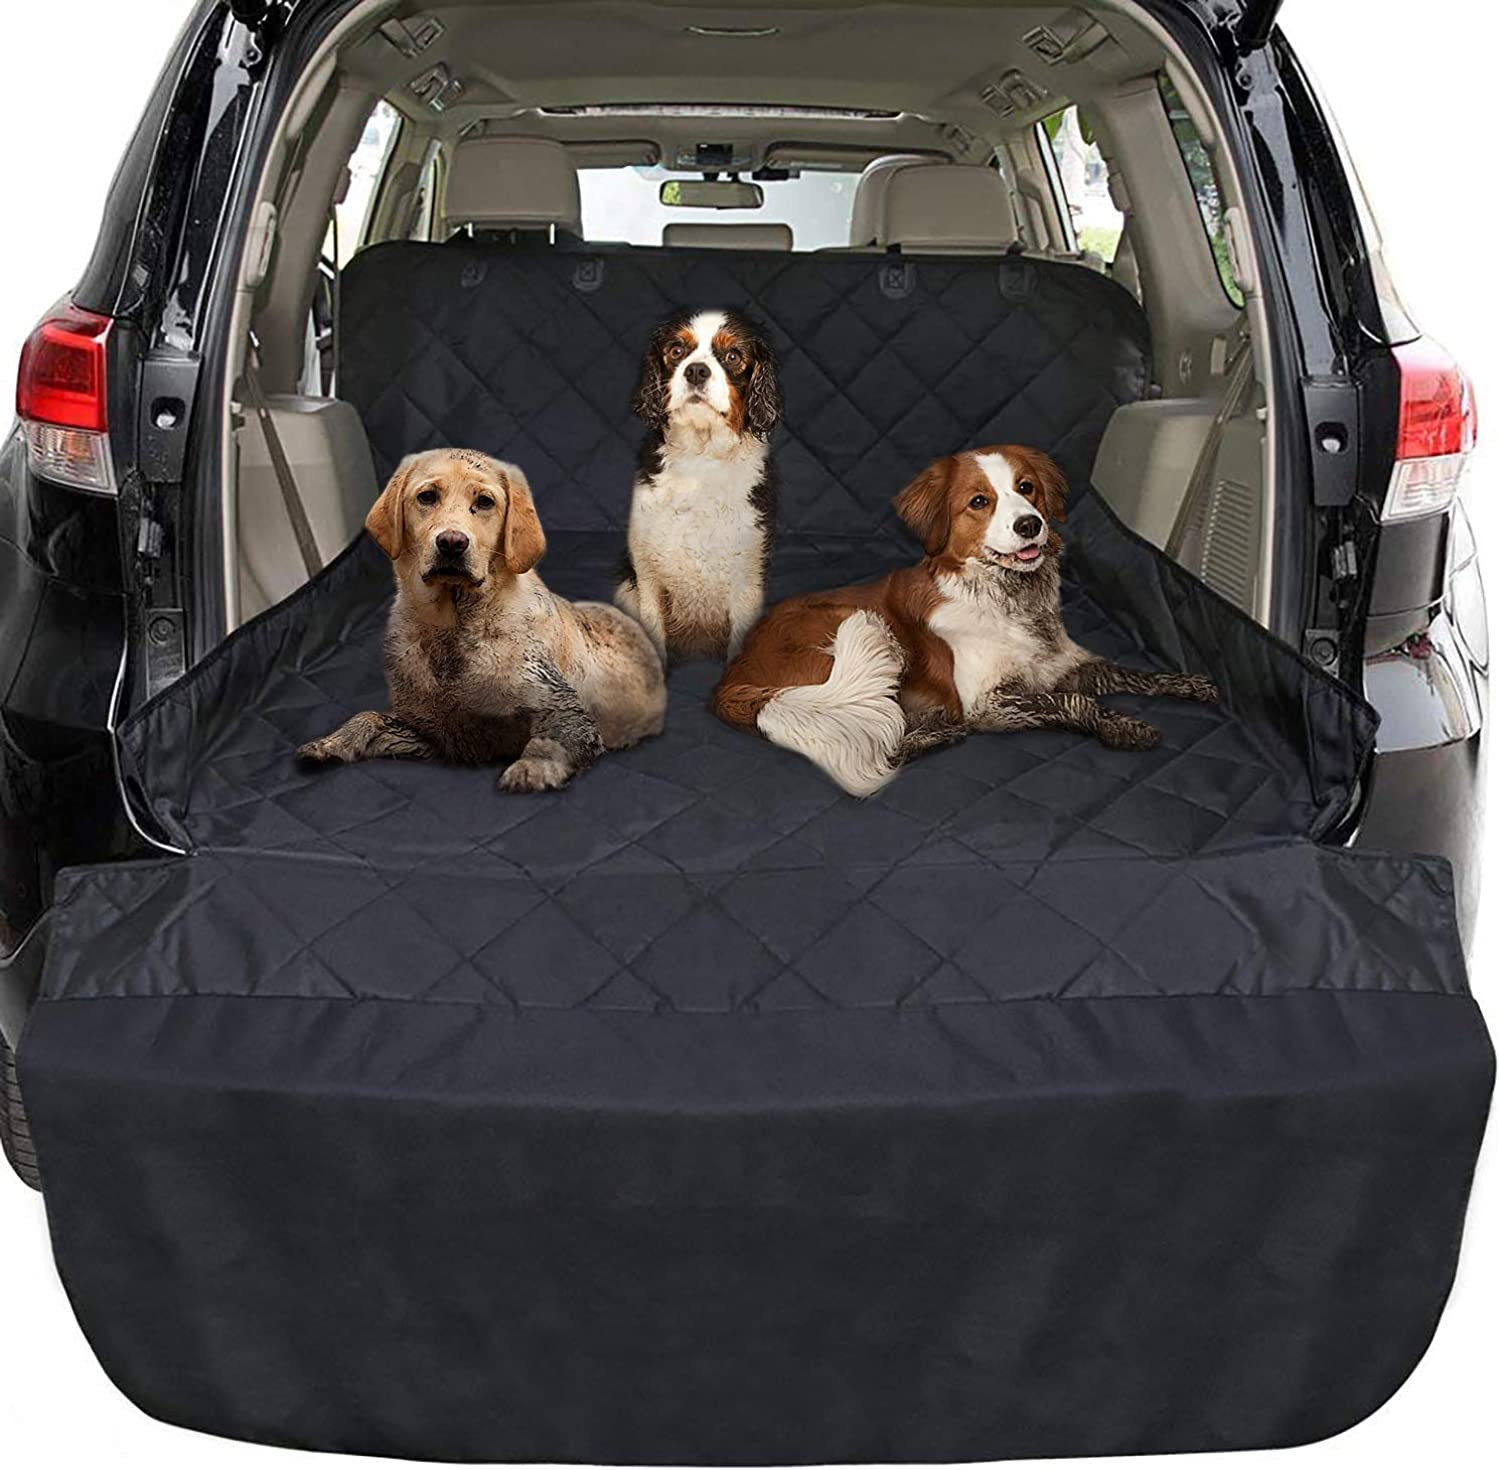 FunniPets Cargo Liner for Dogs SUV, Large Size Universal Fit, Waterproof, NonSlip Backing, Predective Bumper Flap